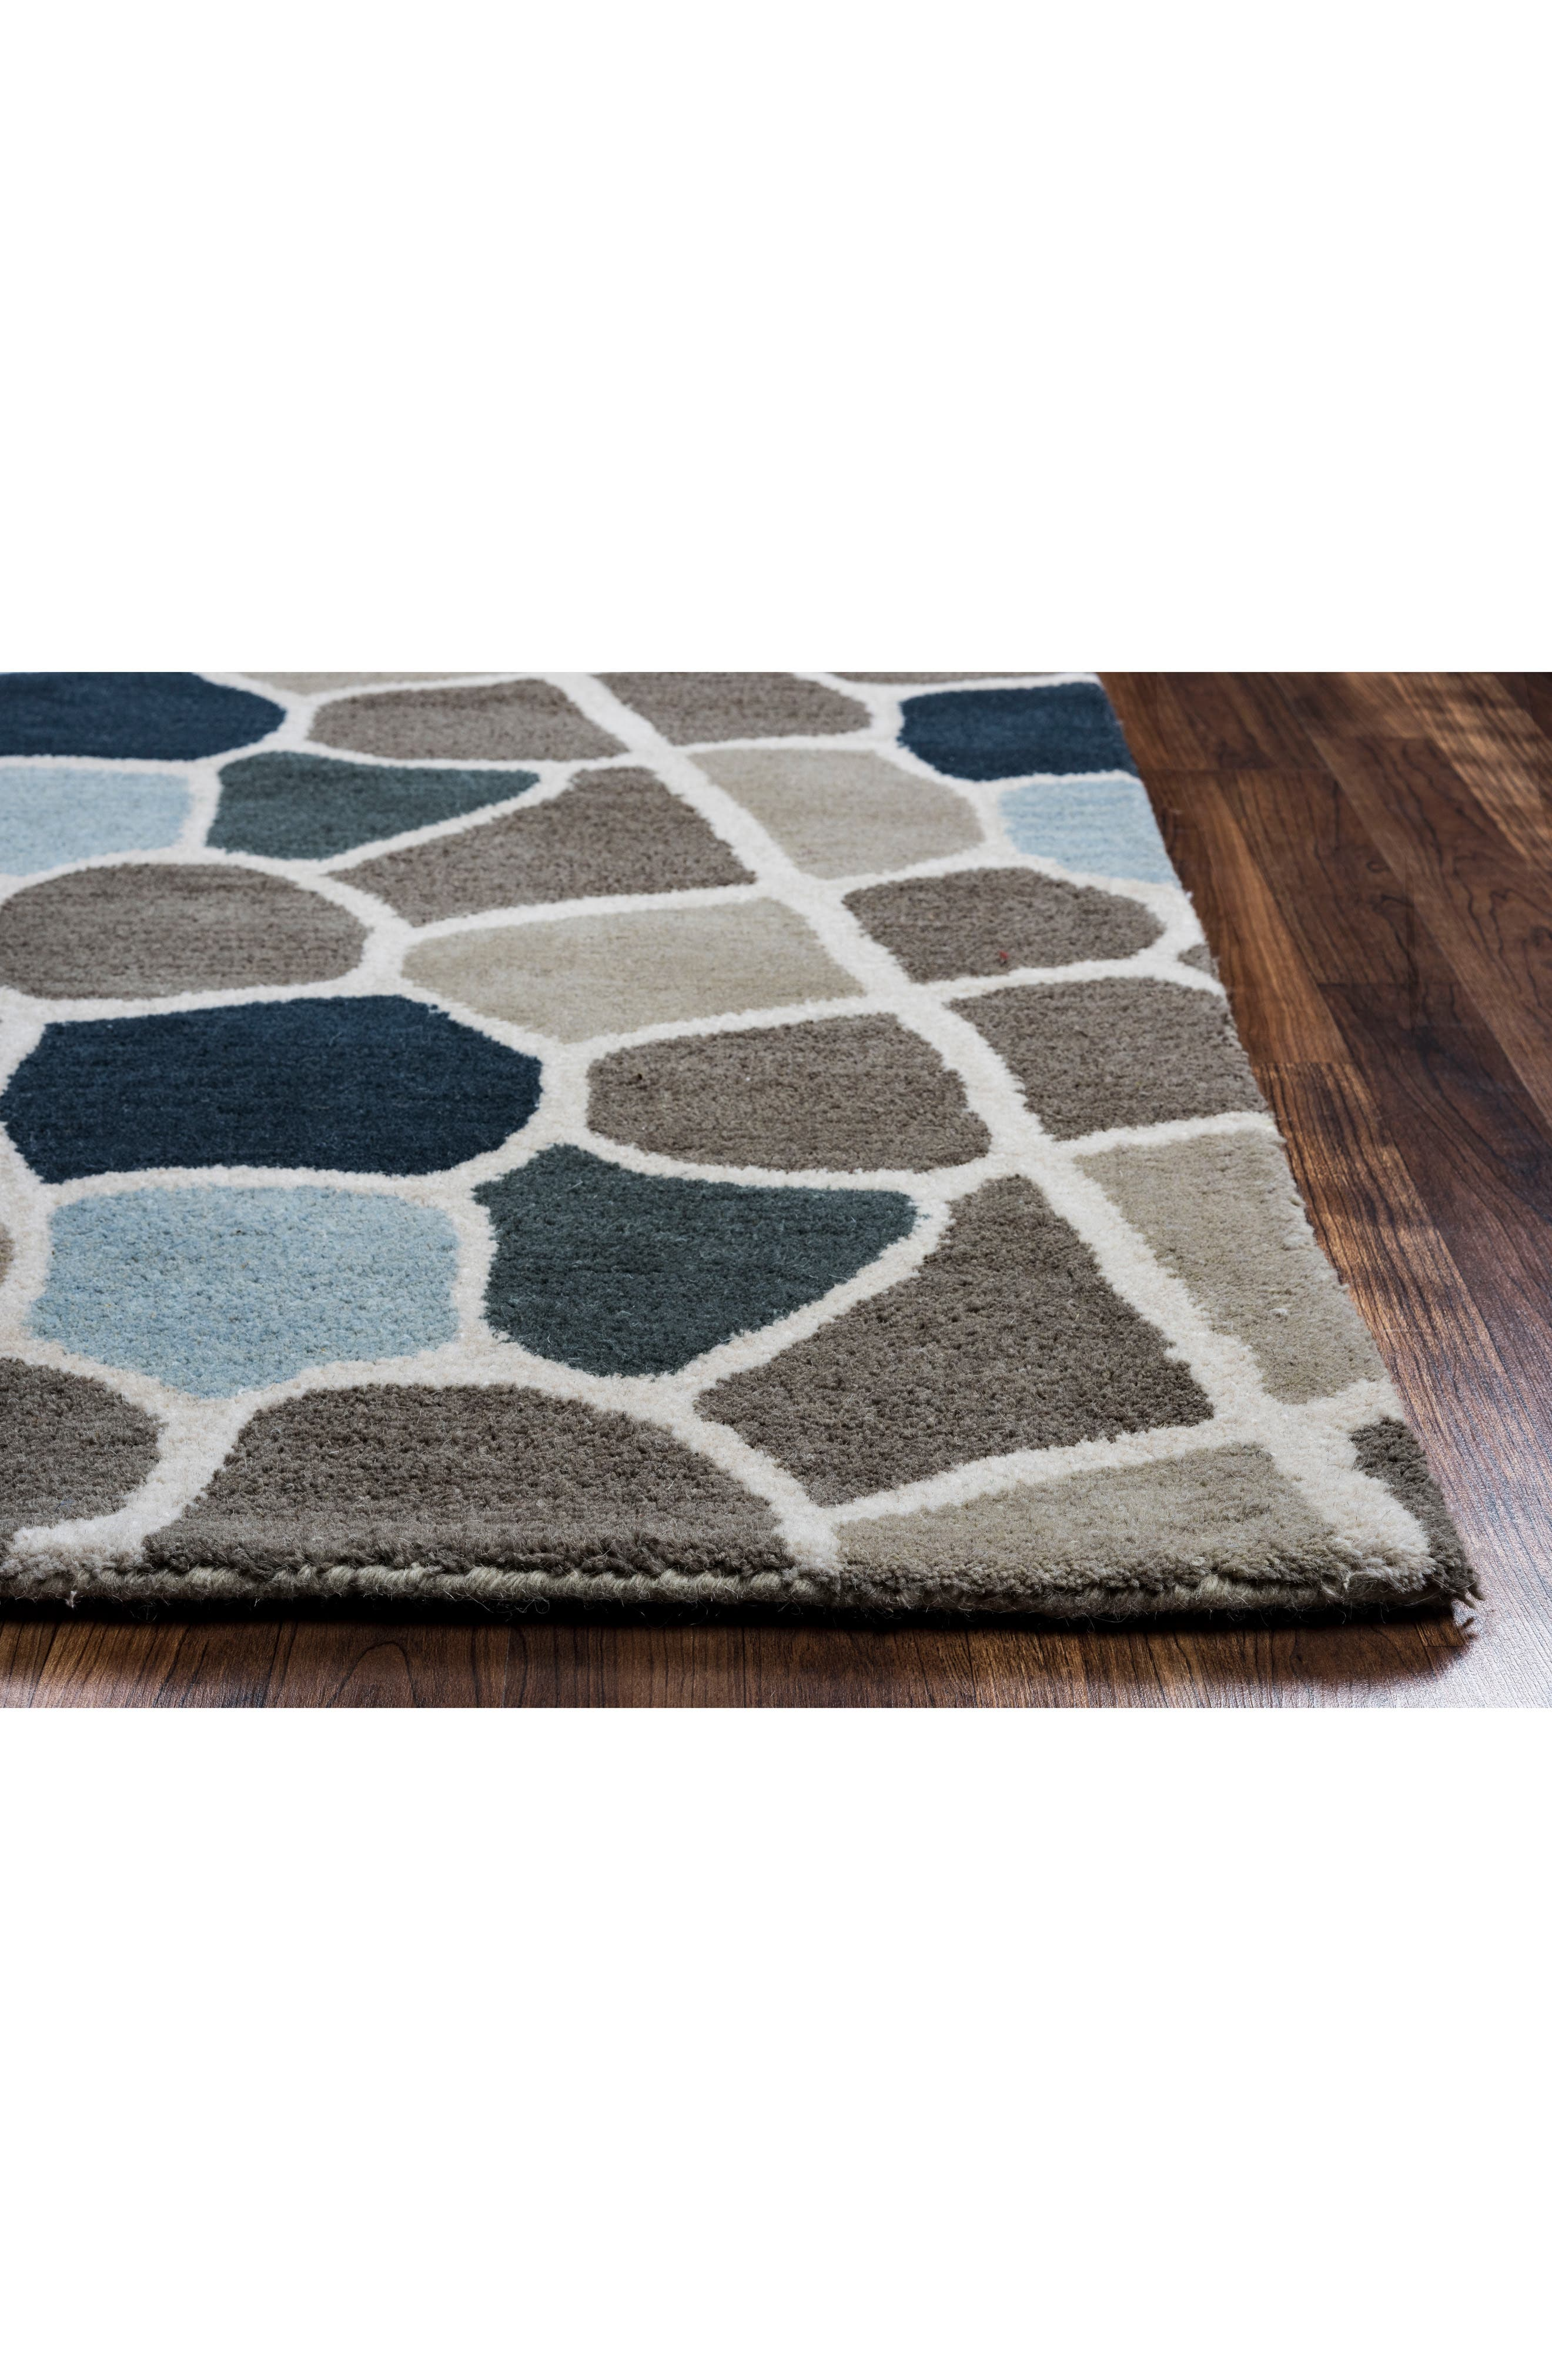 Cobble Geo Hand Tufted Wool Area Rug,                             Alternate thumbnail 5, color,                             020